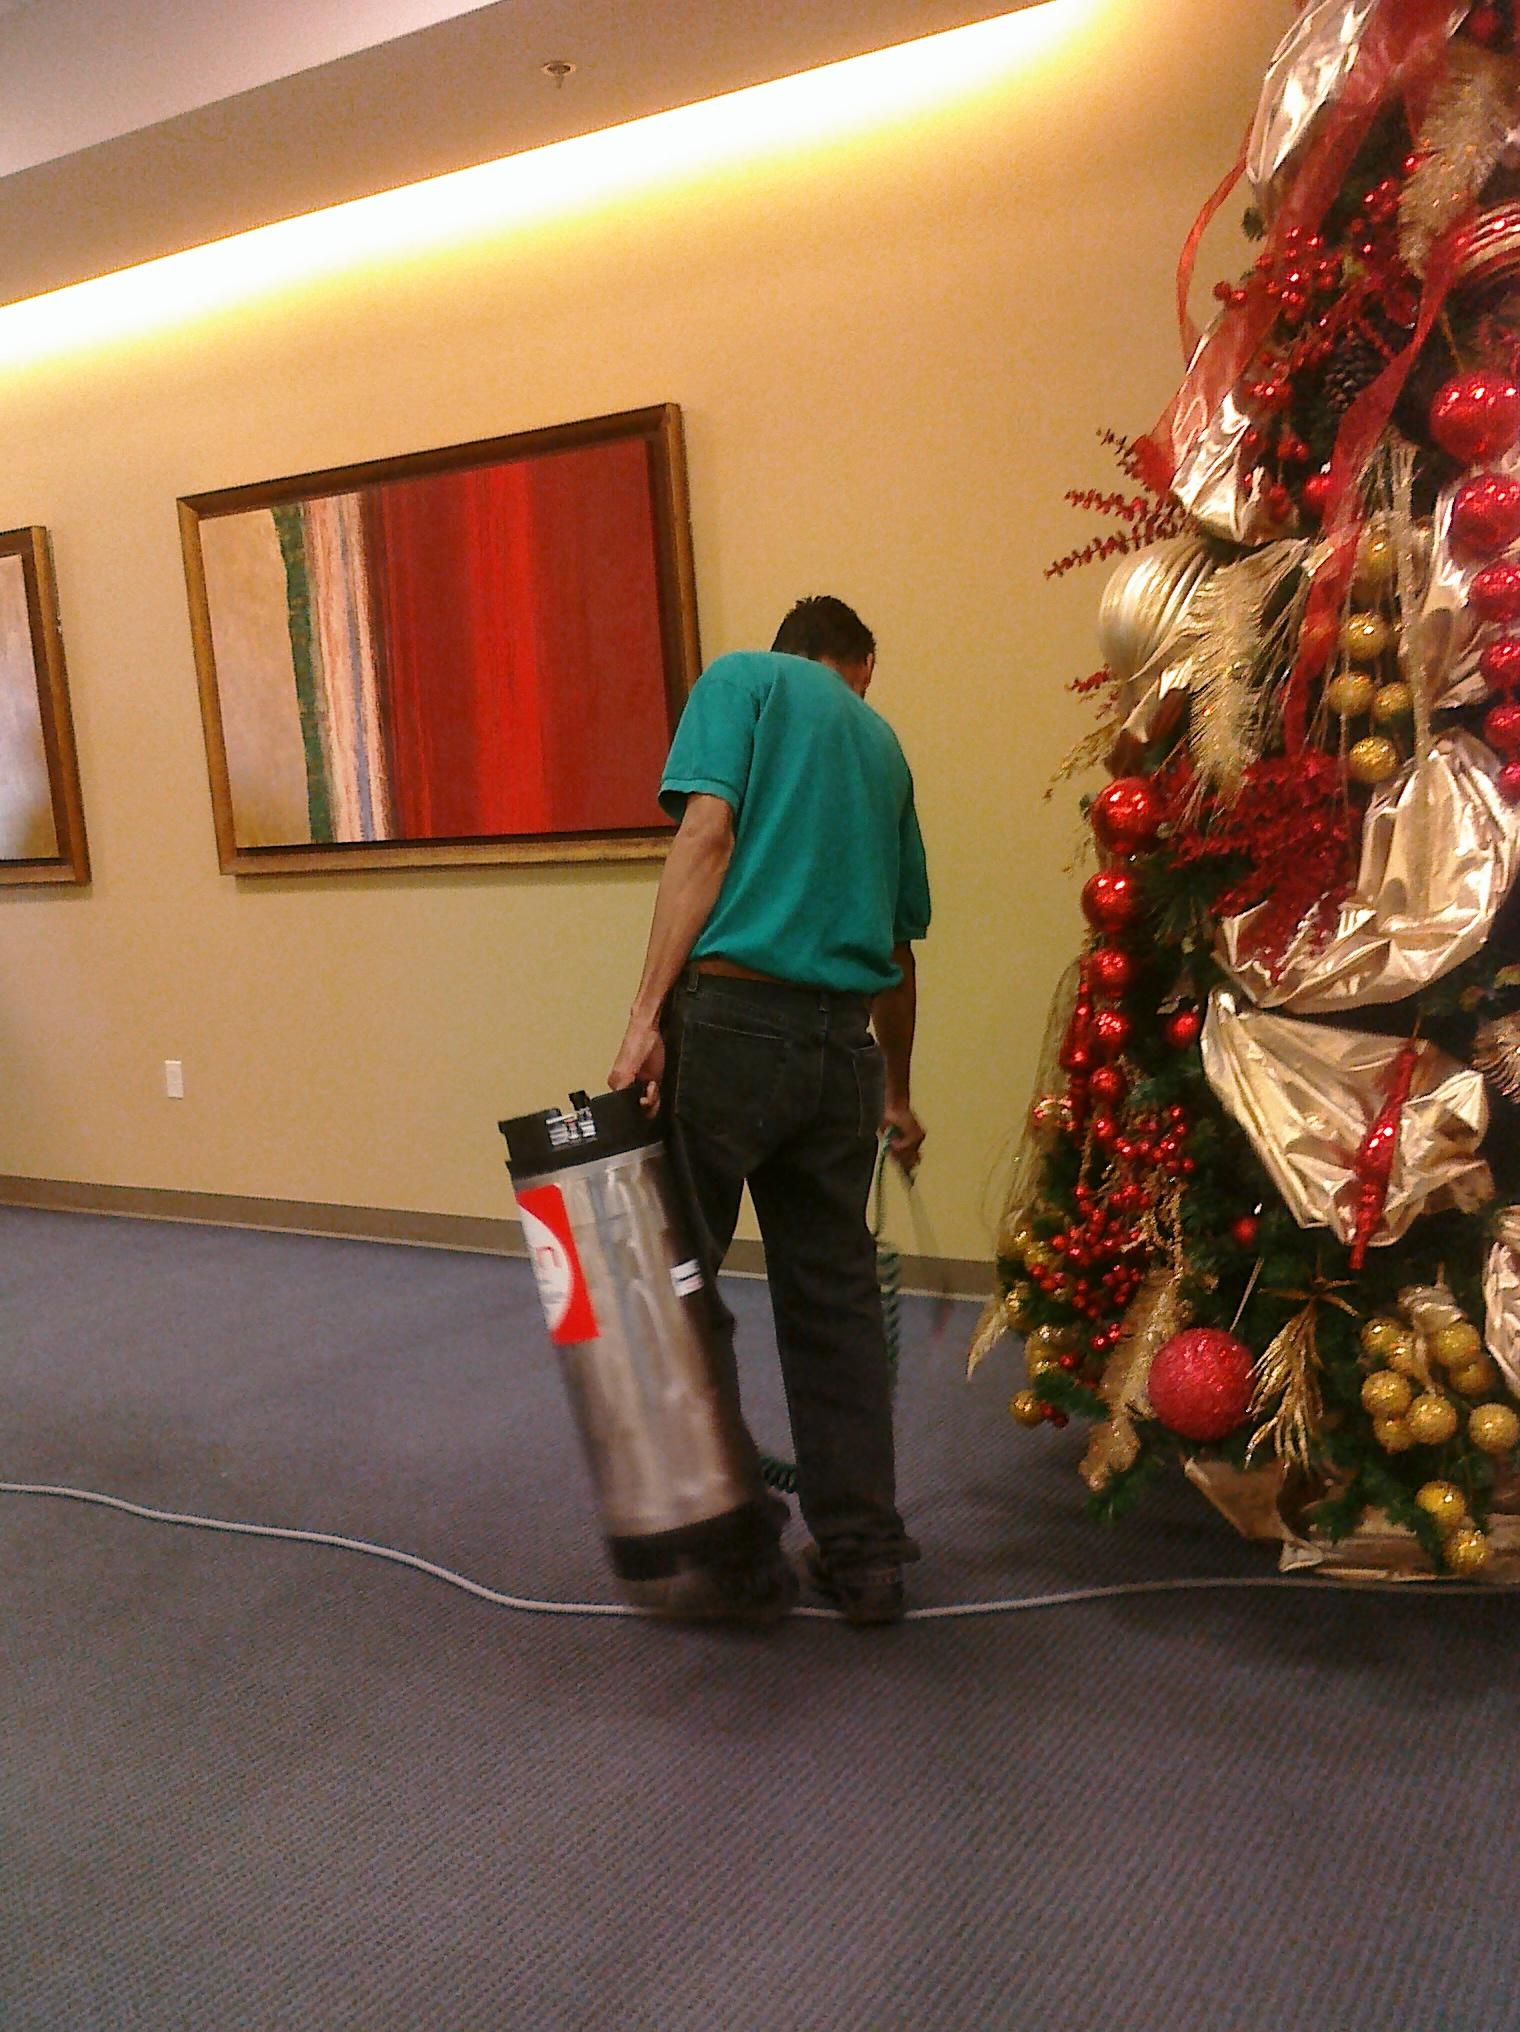 Green Cleaning Services LLC image 25